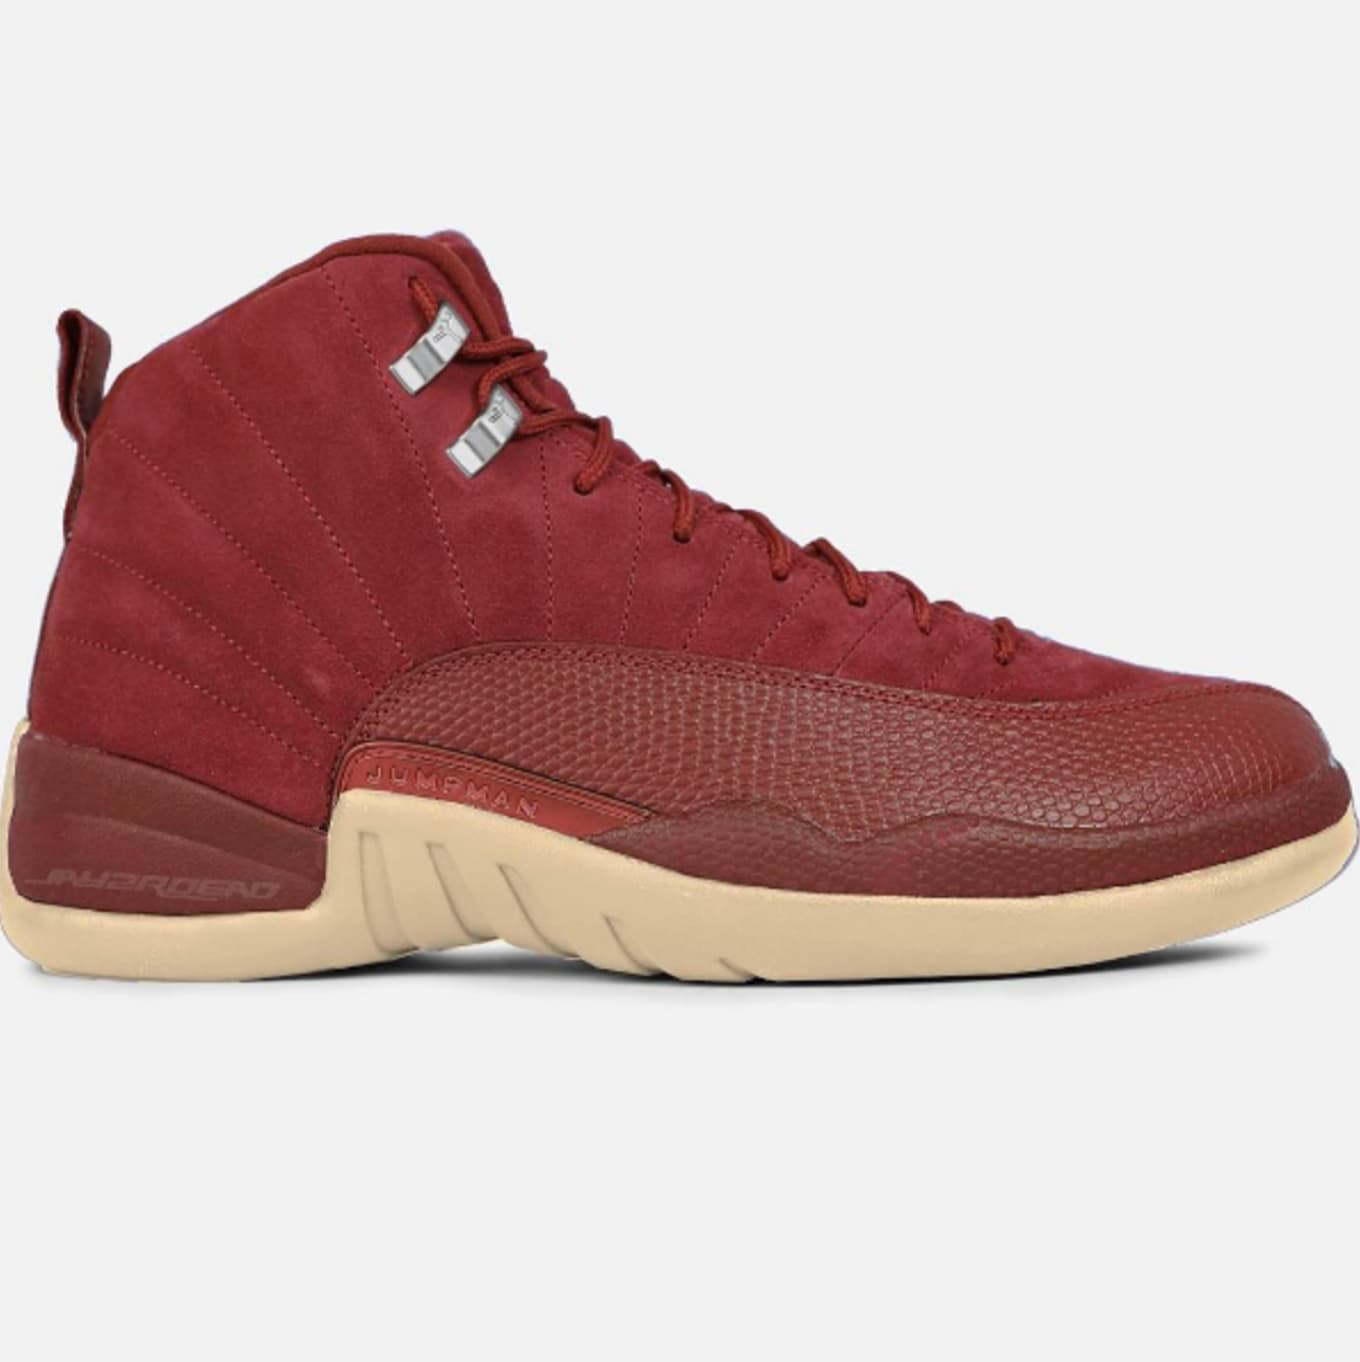 on sale ecbdc a901c Air Jordan 12